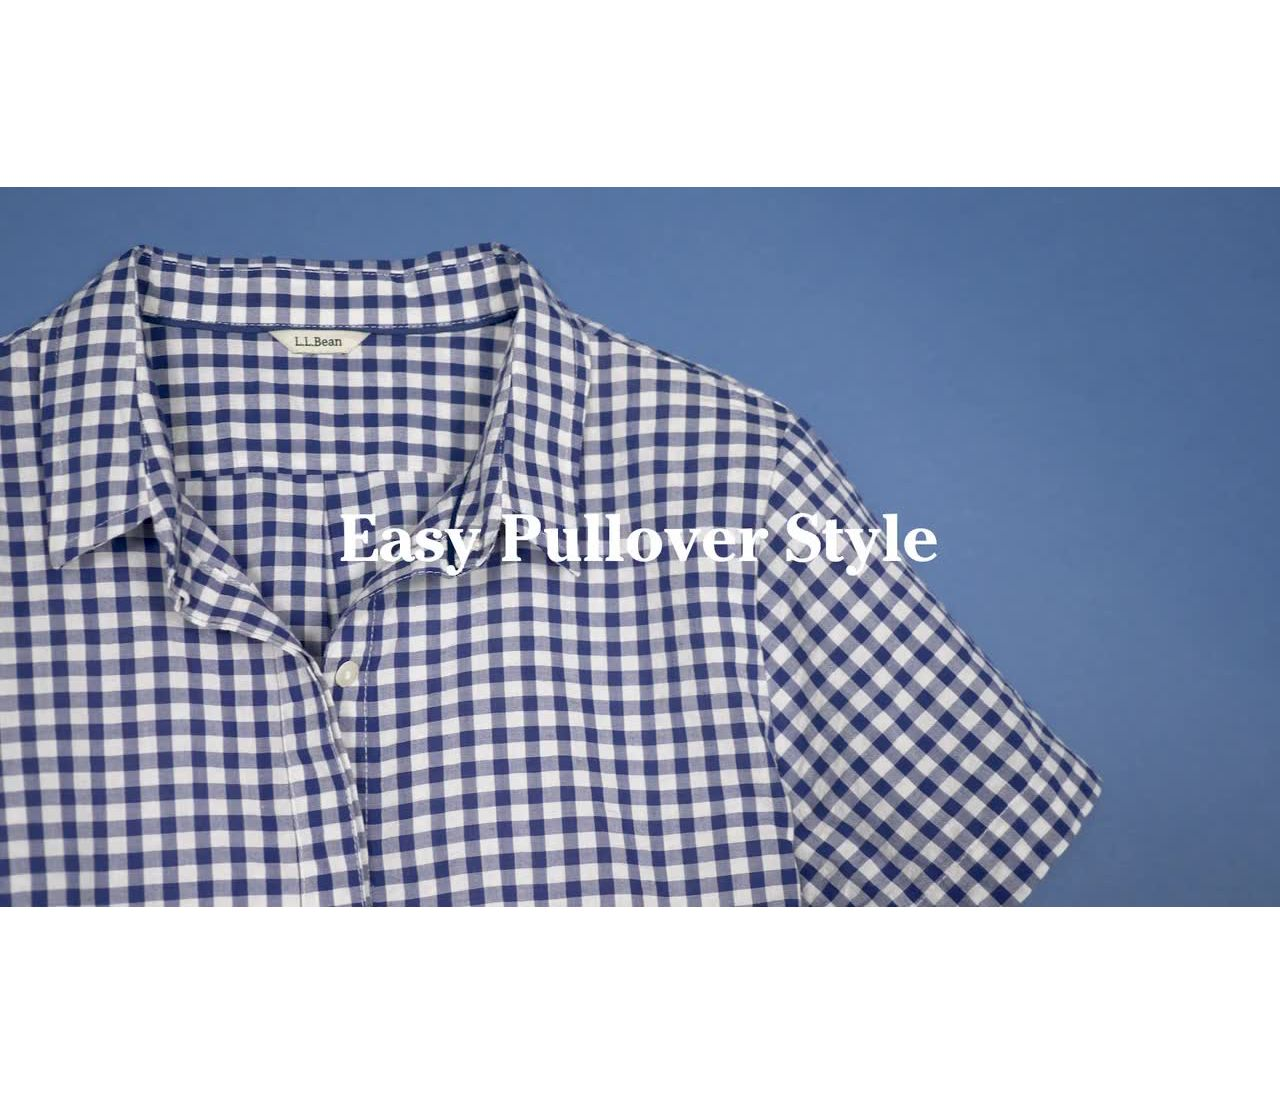 Video: Textured Cotton Popover Shirt Short Sleeve Gingham Misses